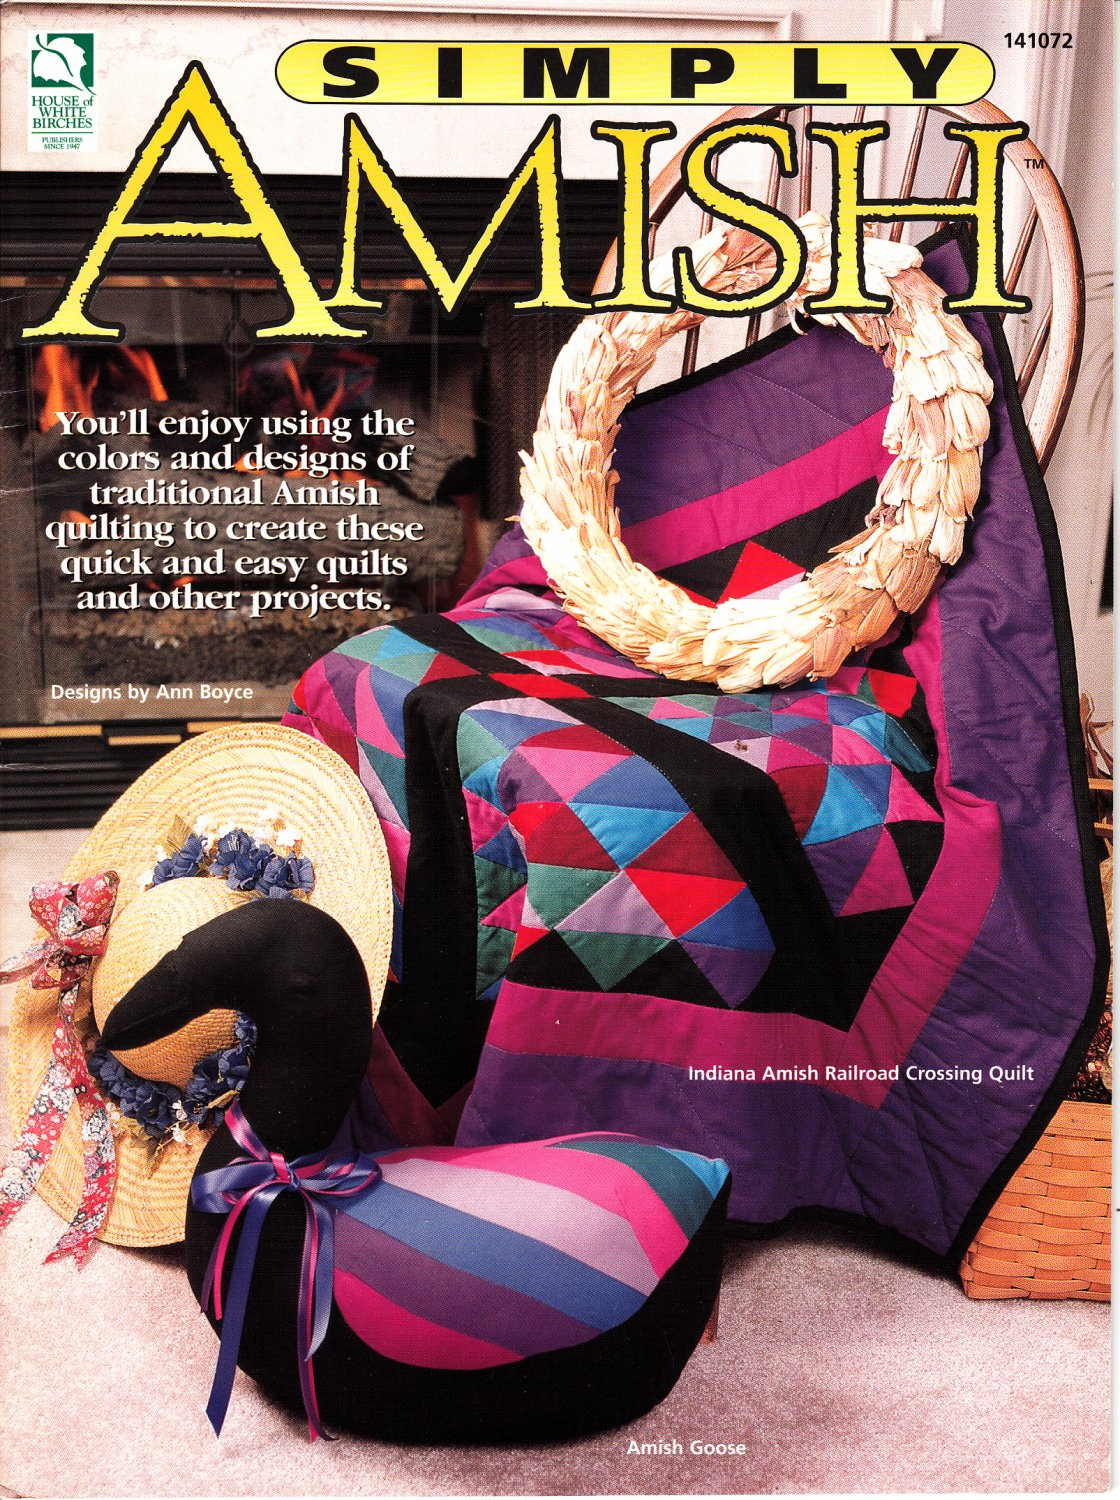 Simply Amish by Ann Boyce (Quilting, 1998)